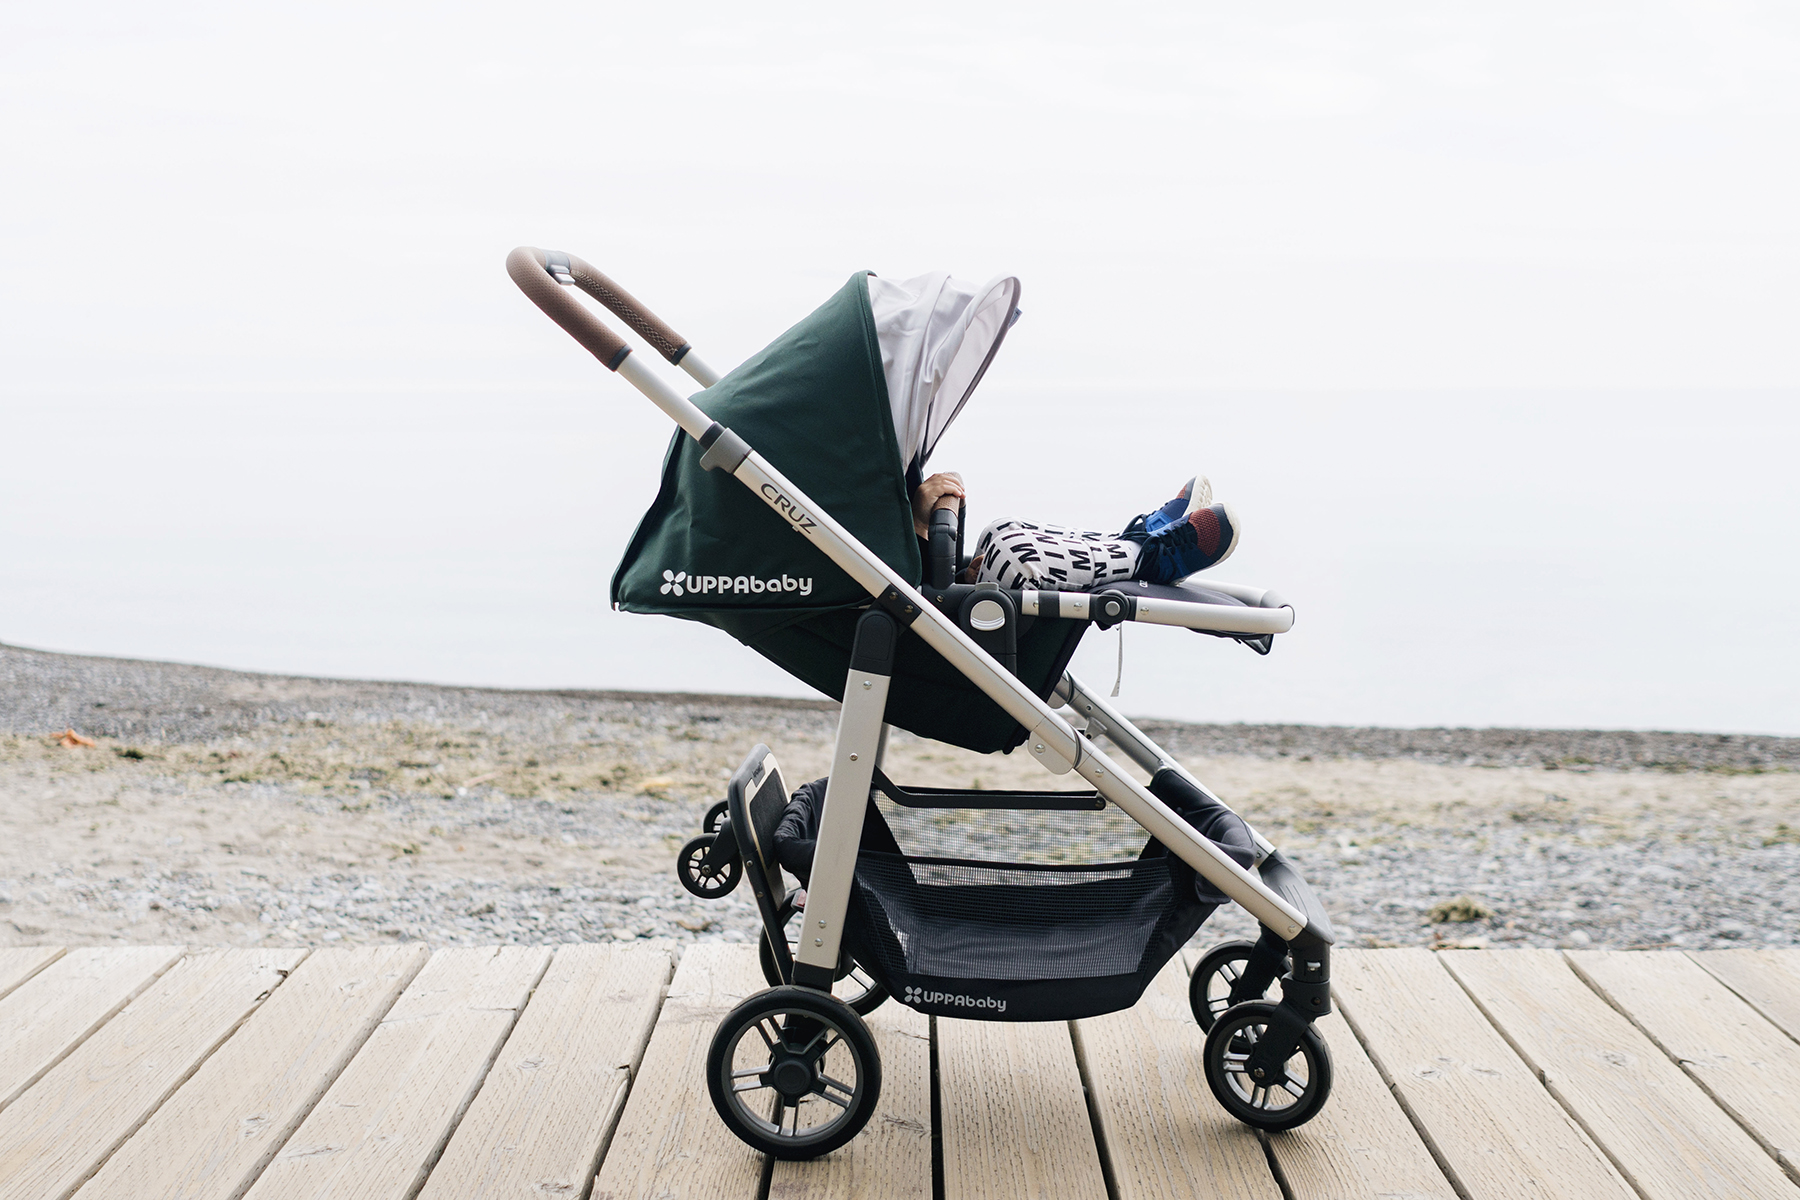 2017 Uppababy Cruz hunter green | how to pick the perfect stroller